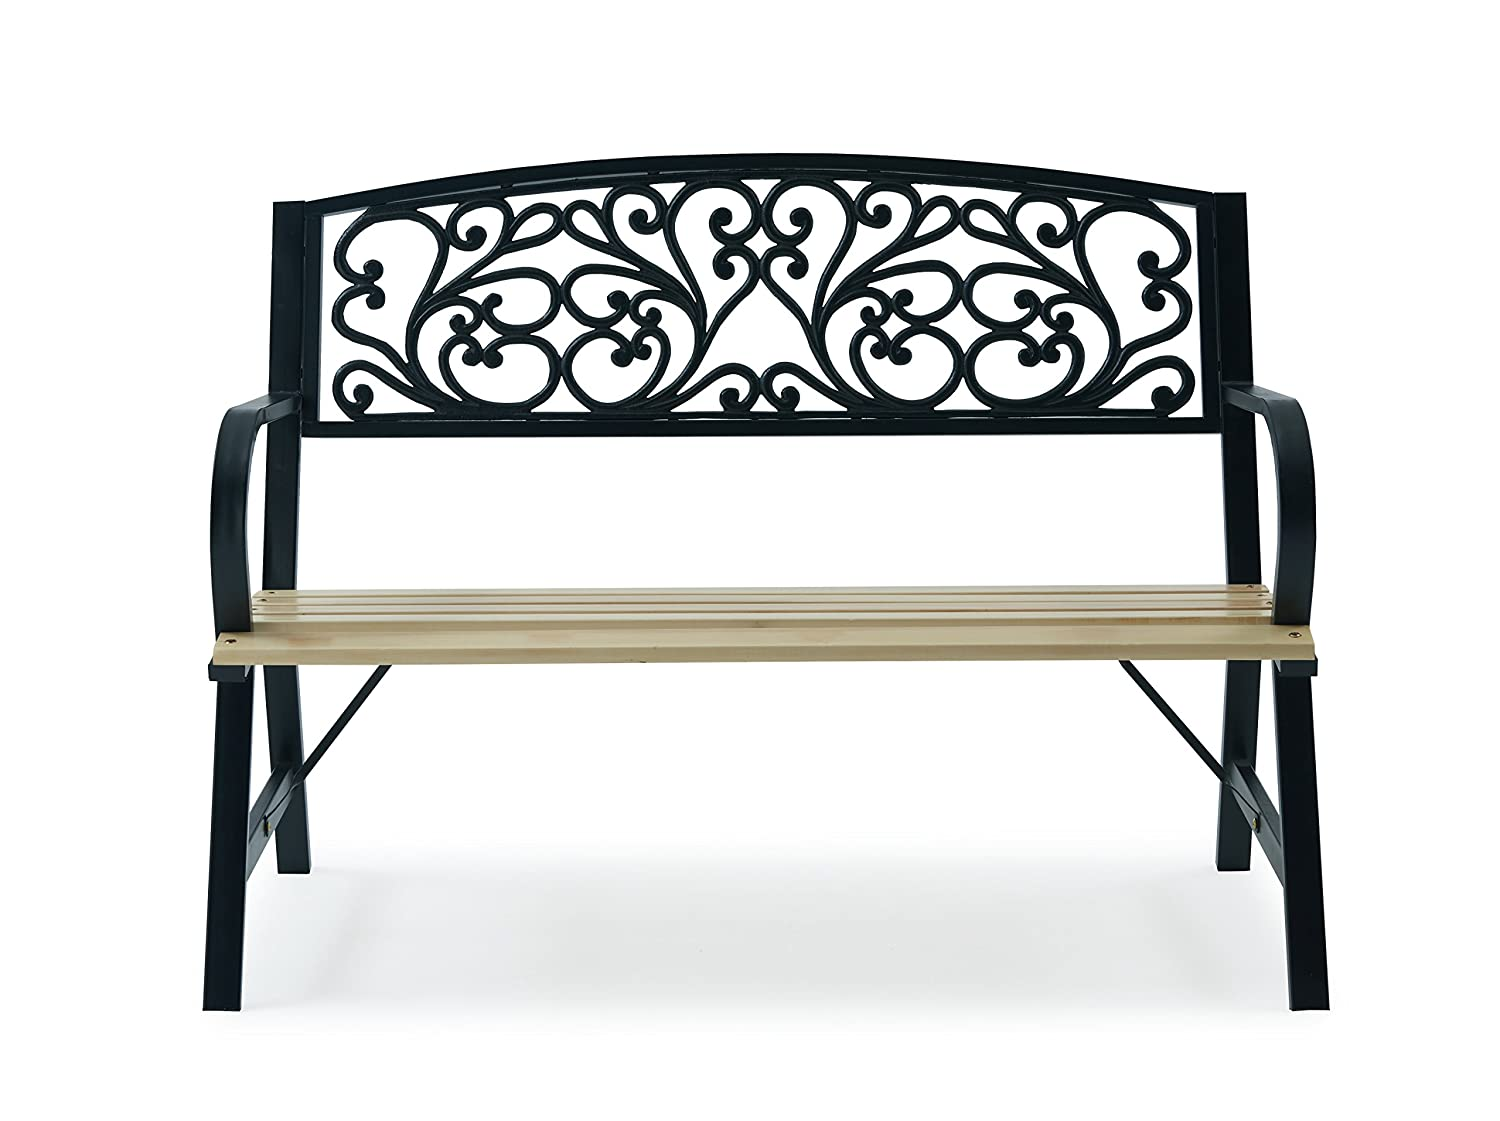 LIVIVO Cast Iron/Wood 'Fancy Floral 'Garden Bench With Elegant Floral Design Back, Natural and Comfortable Slatted Wood Seat